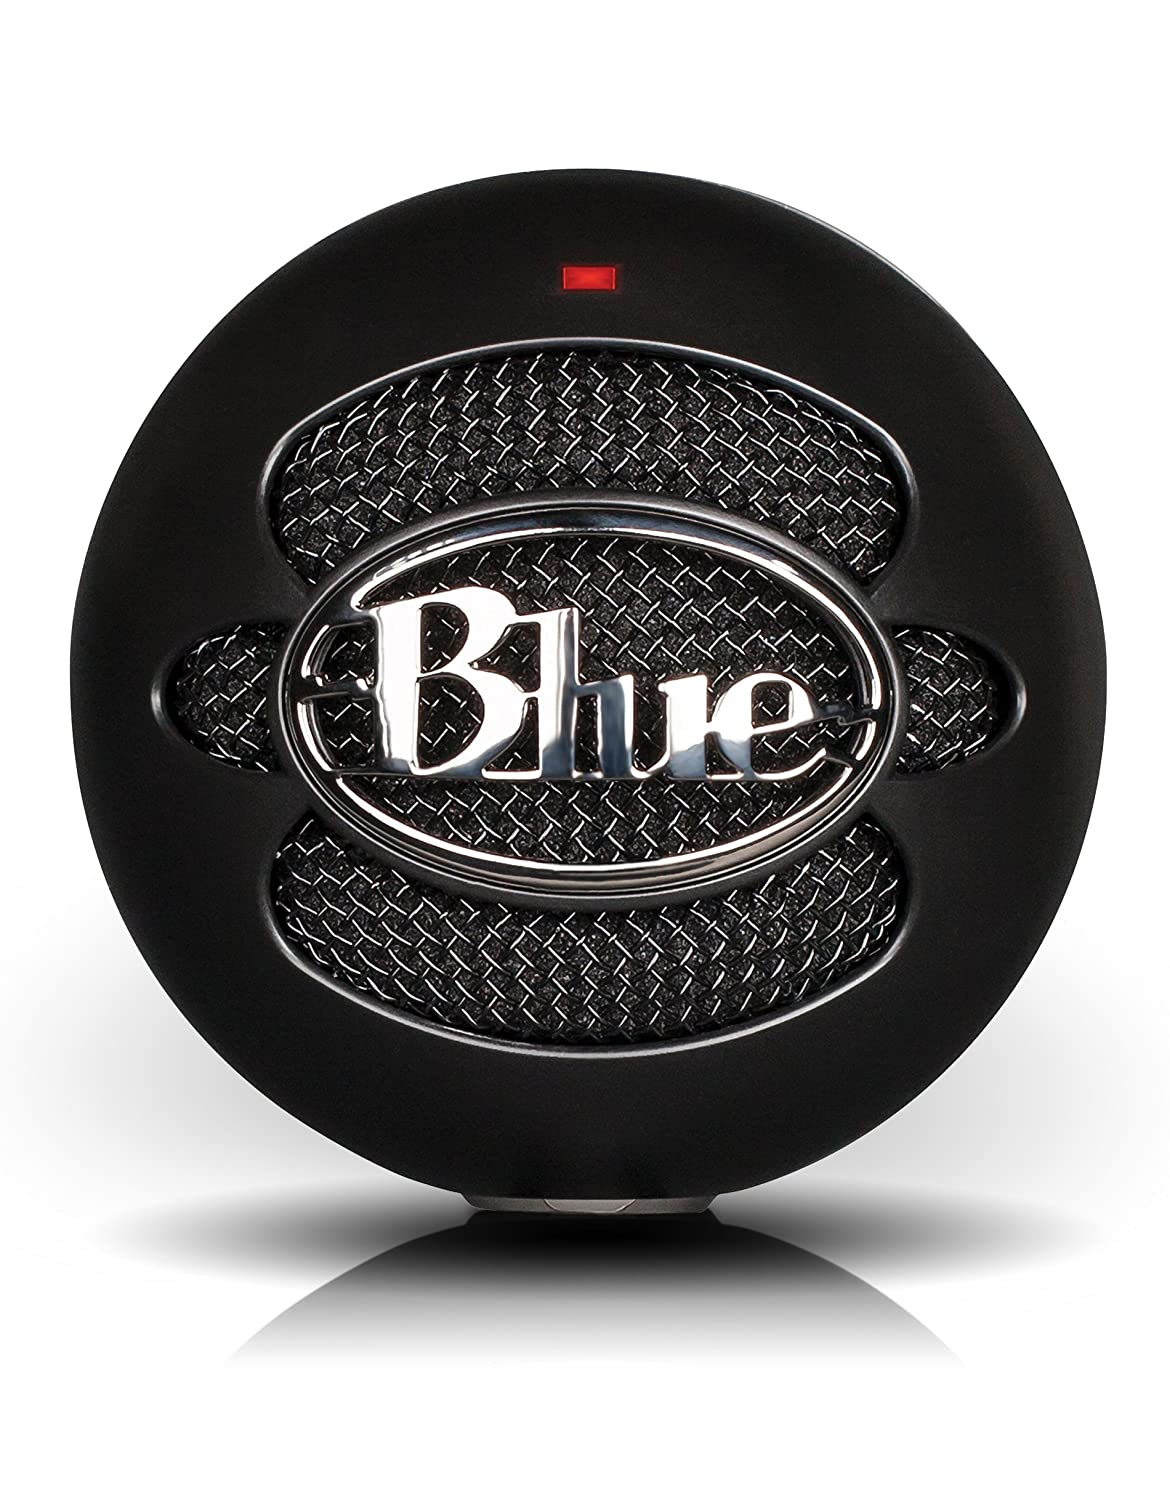 Blue Snowball iCE CondenserマイクロフォンBlk(Certified Refurbished) B01LY0U5AD